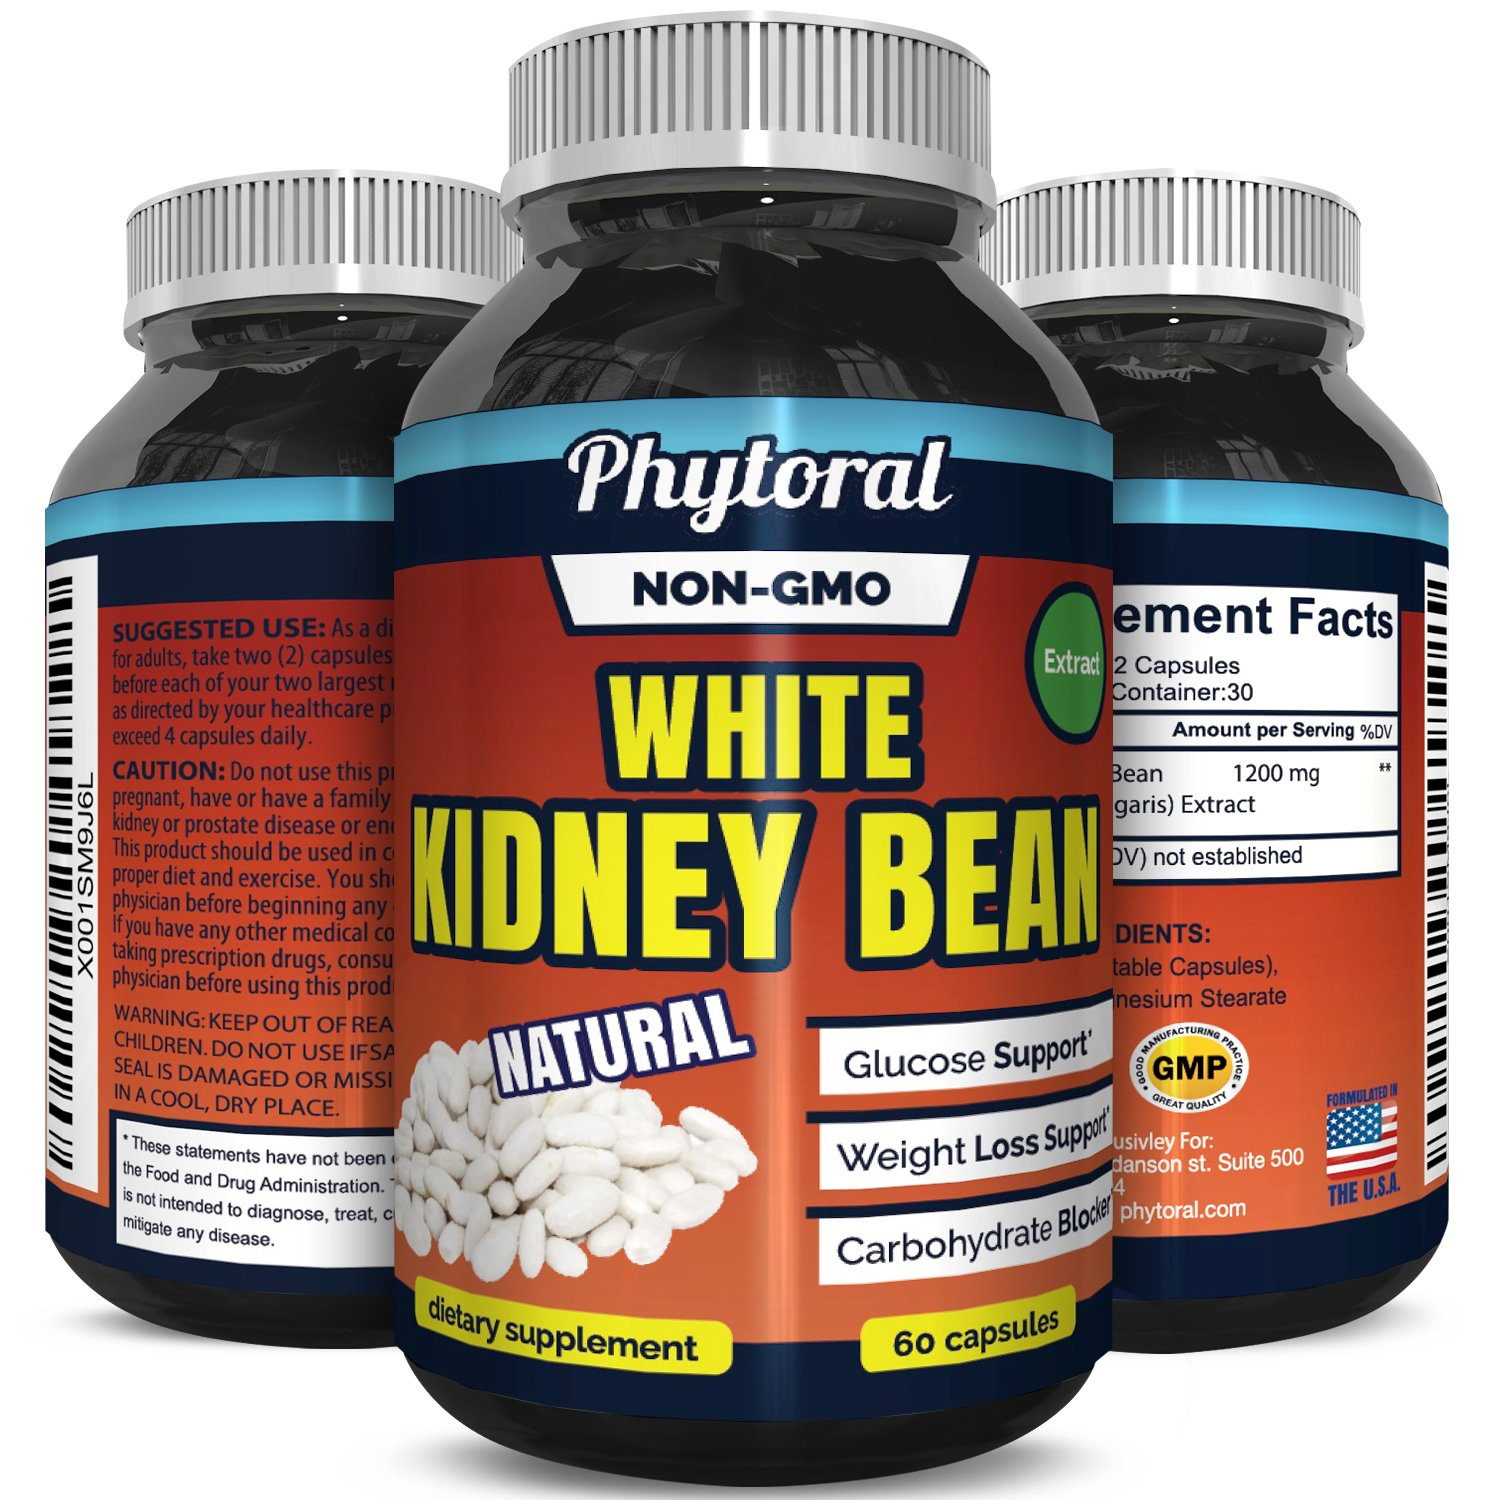 White Kidney Bean Supplement Pills 100% Pure Extract Starch & Carb Blocker Weight Loss Formula - Lose Belly Fat Suppress Appetite Boost Metabolism Natural Weight Loss for Men and Women by Phytoral by Phytoral